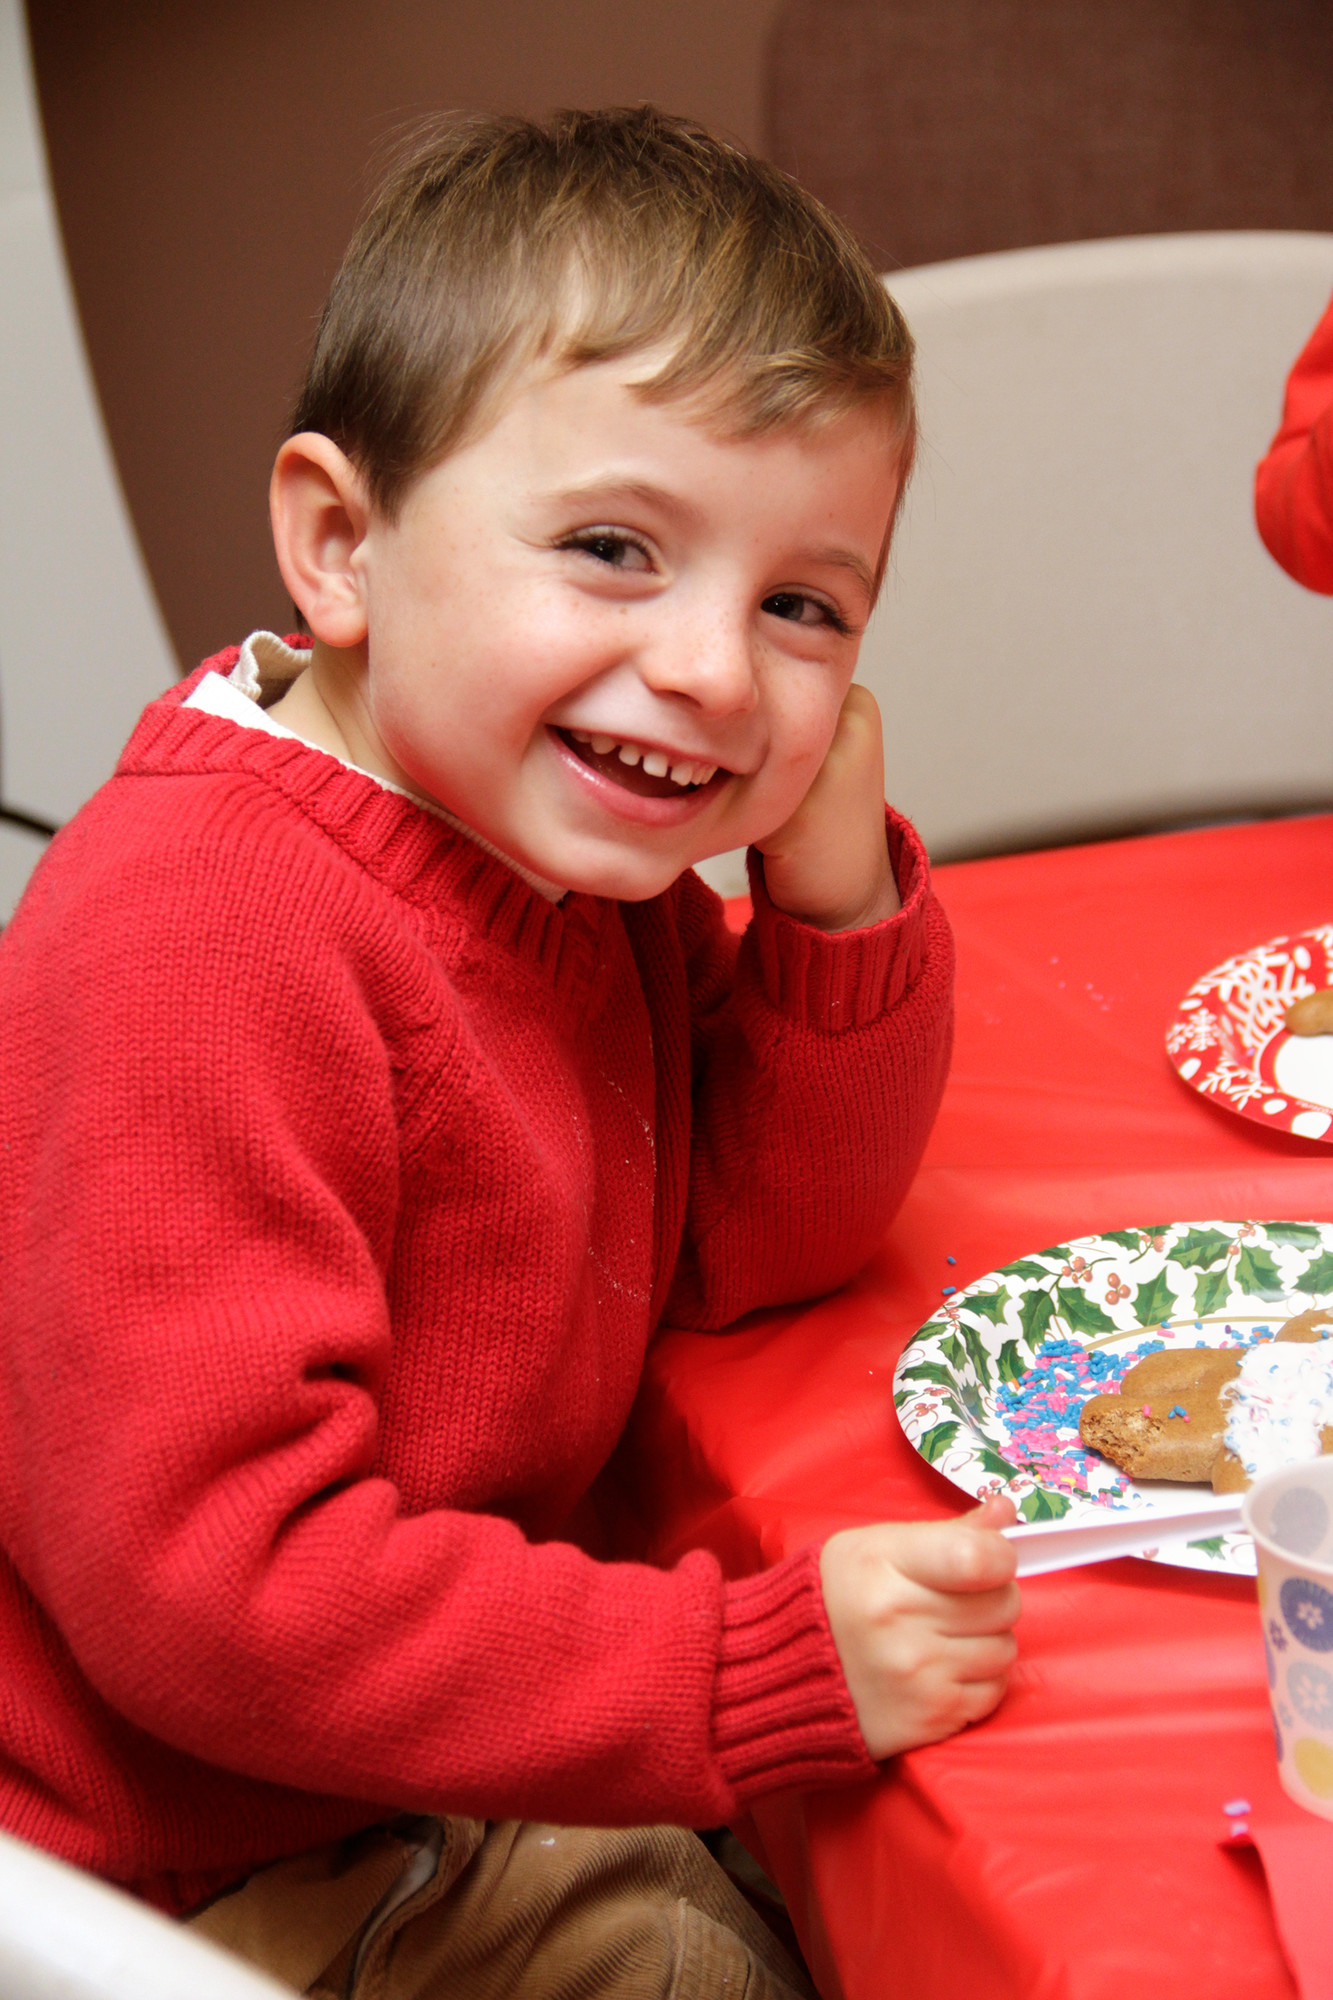 """No flash photography, please!"" says 5-year old Luke McKeon during Malverne's cookie workshop."